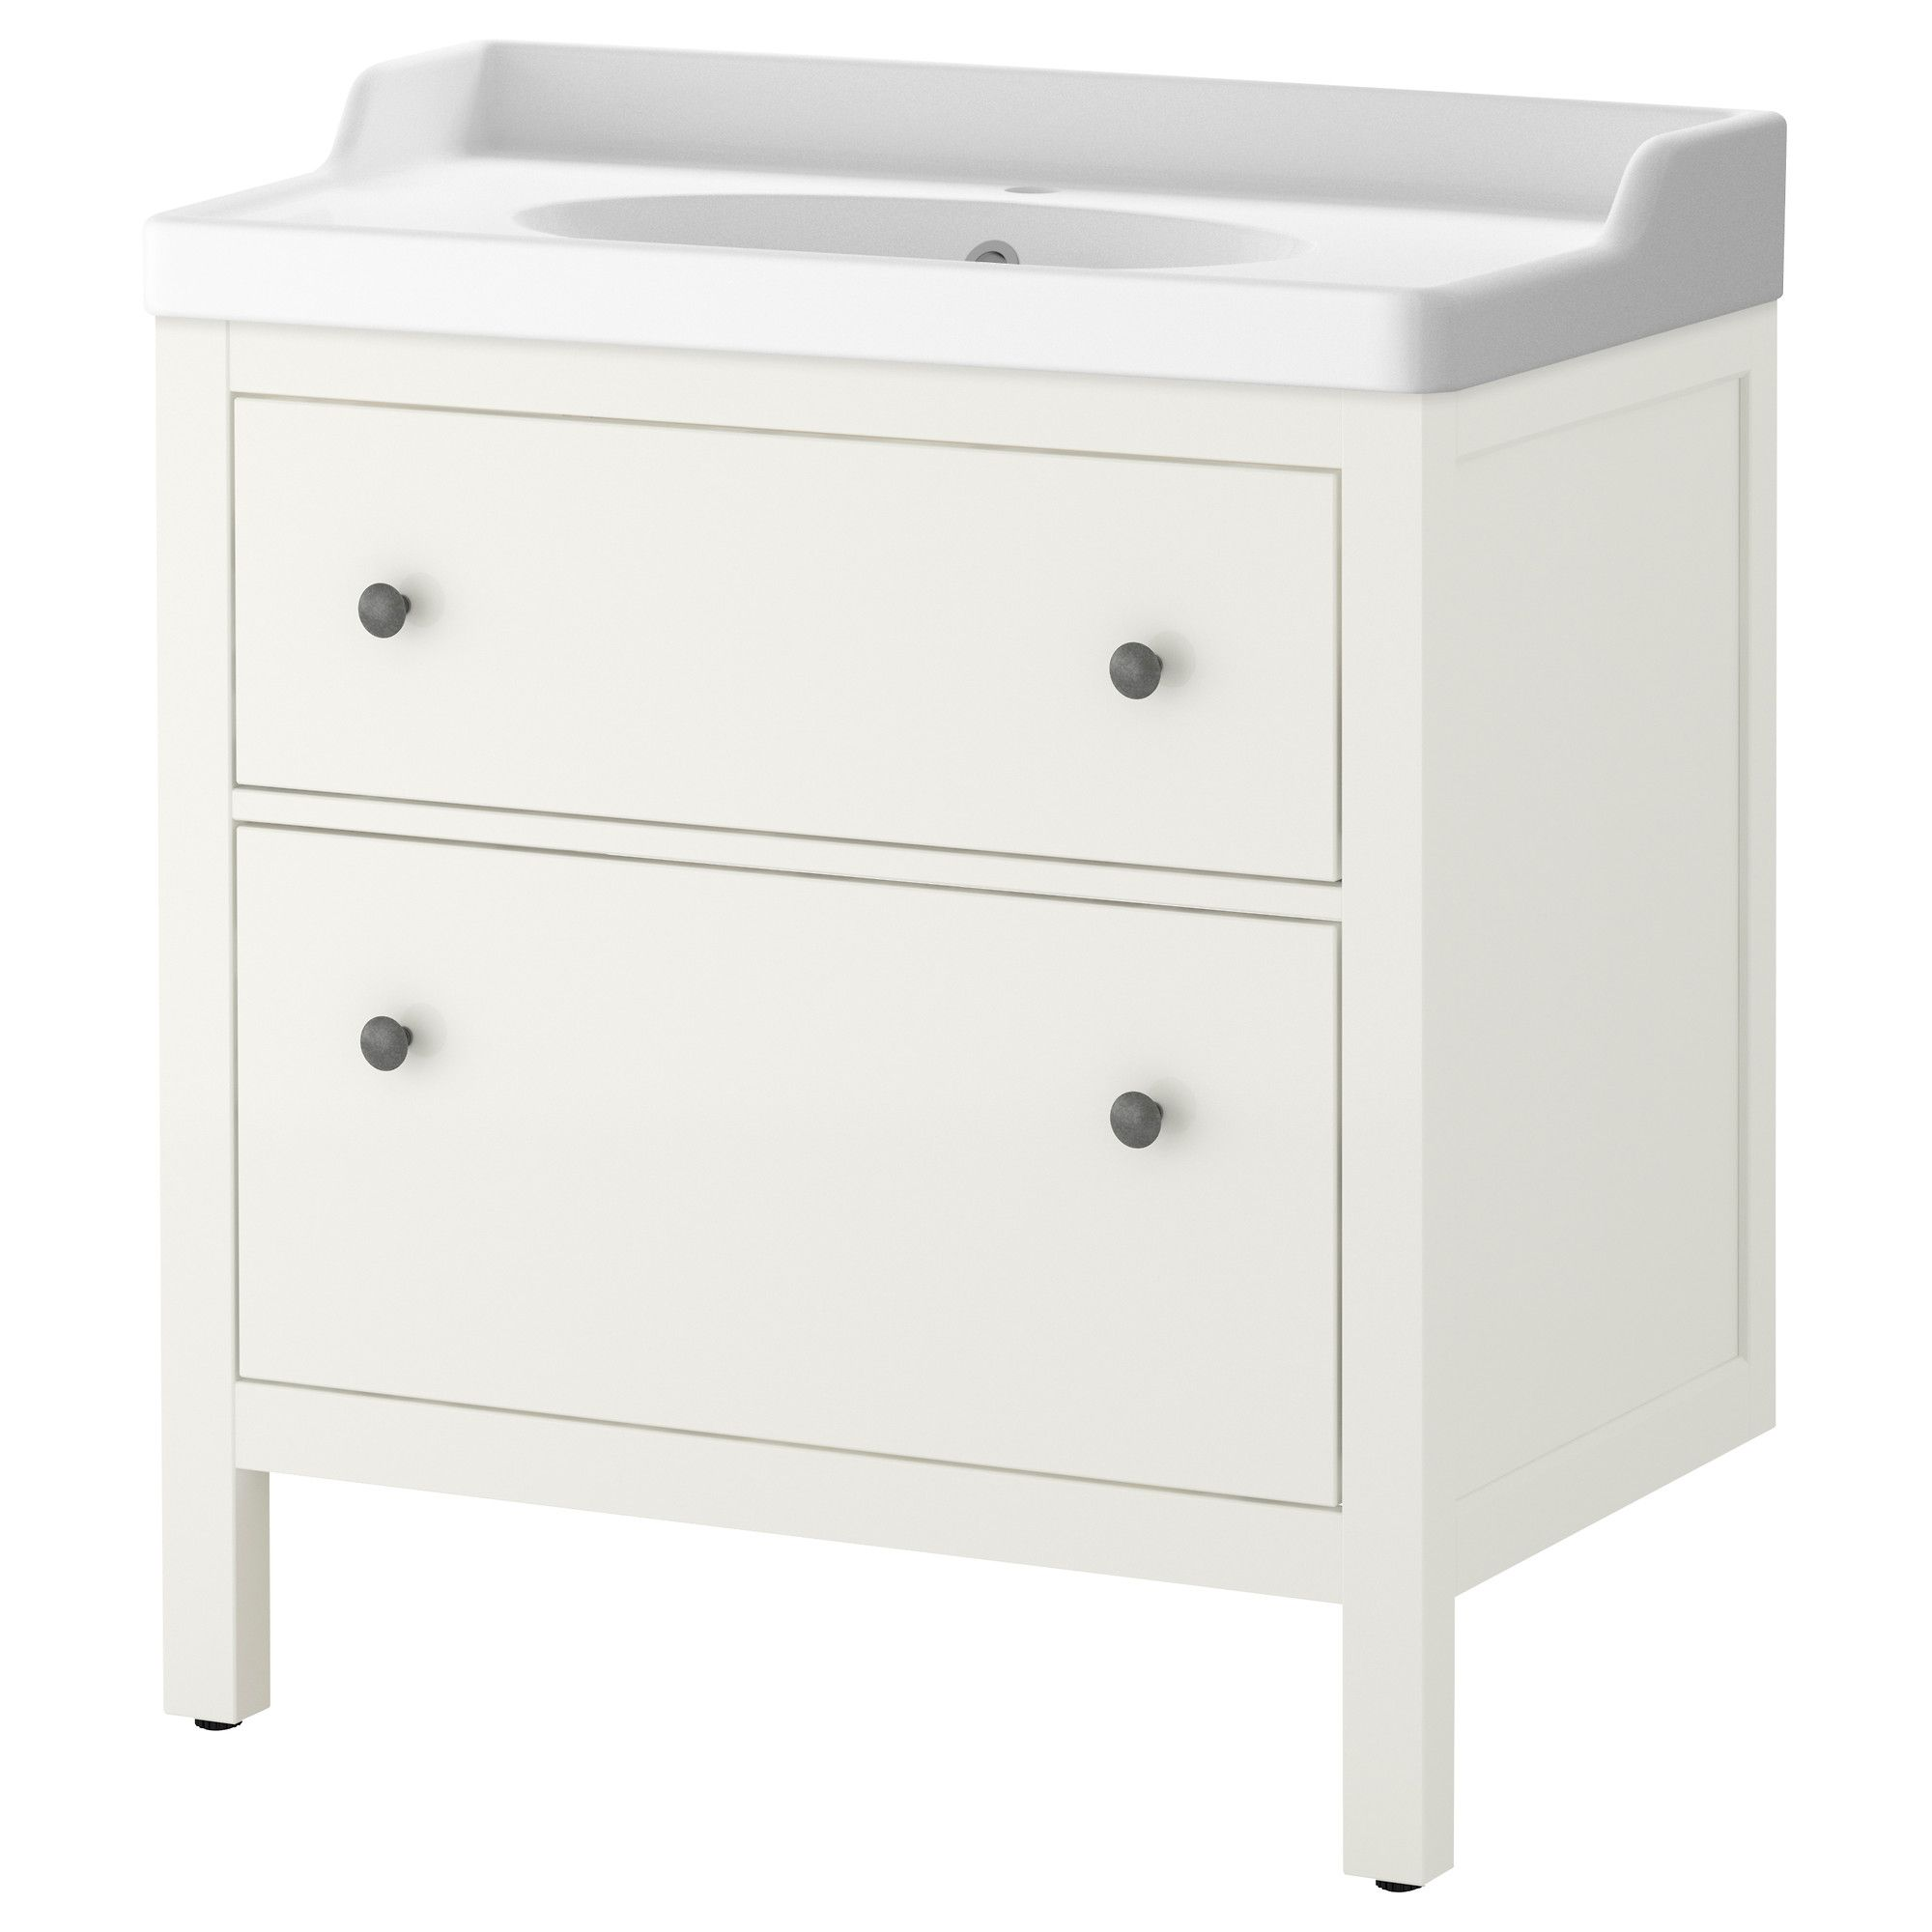 "HEMNES R""TTVIKEN Sink cabinet with 2 drawers white"